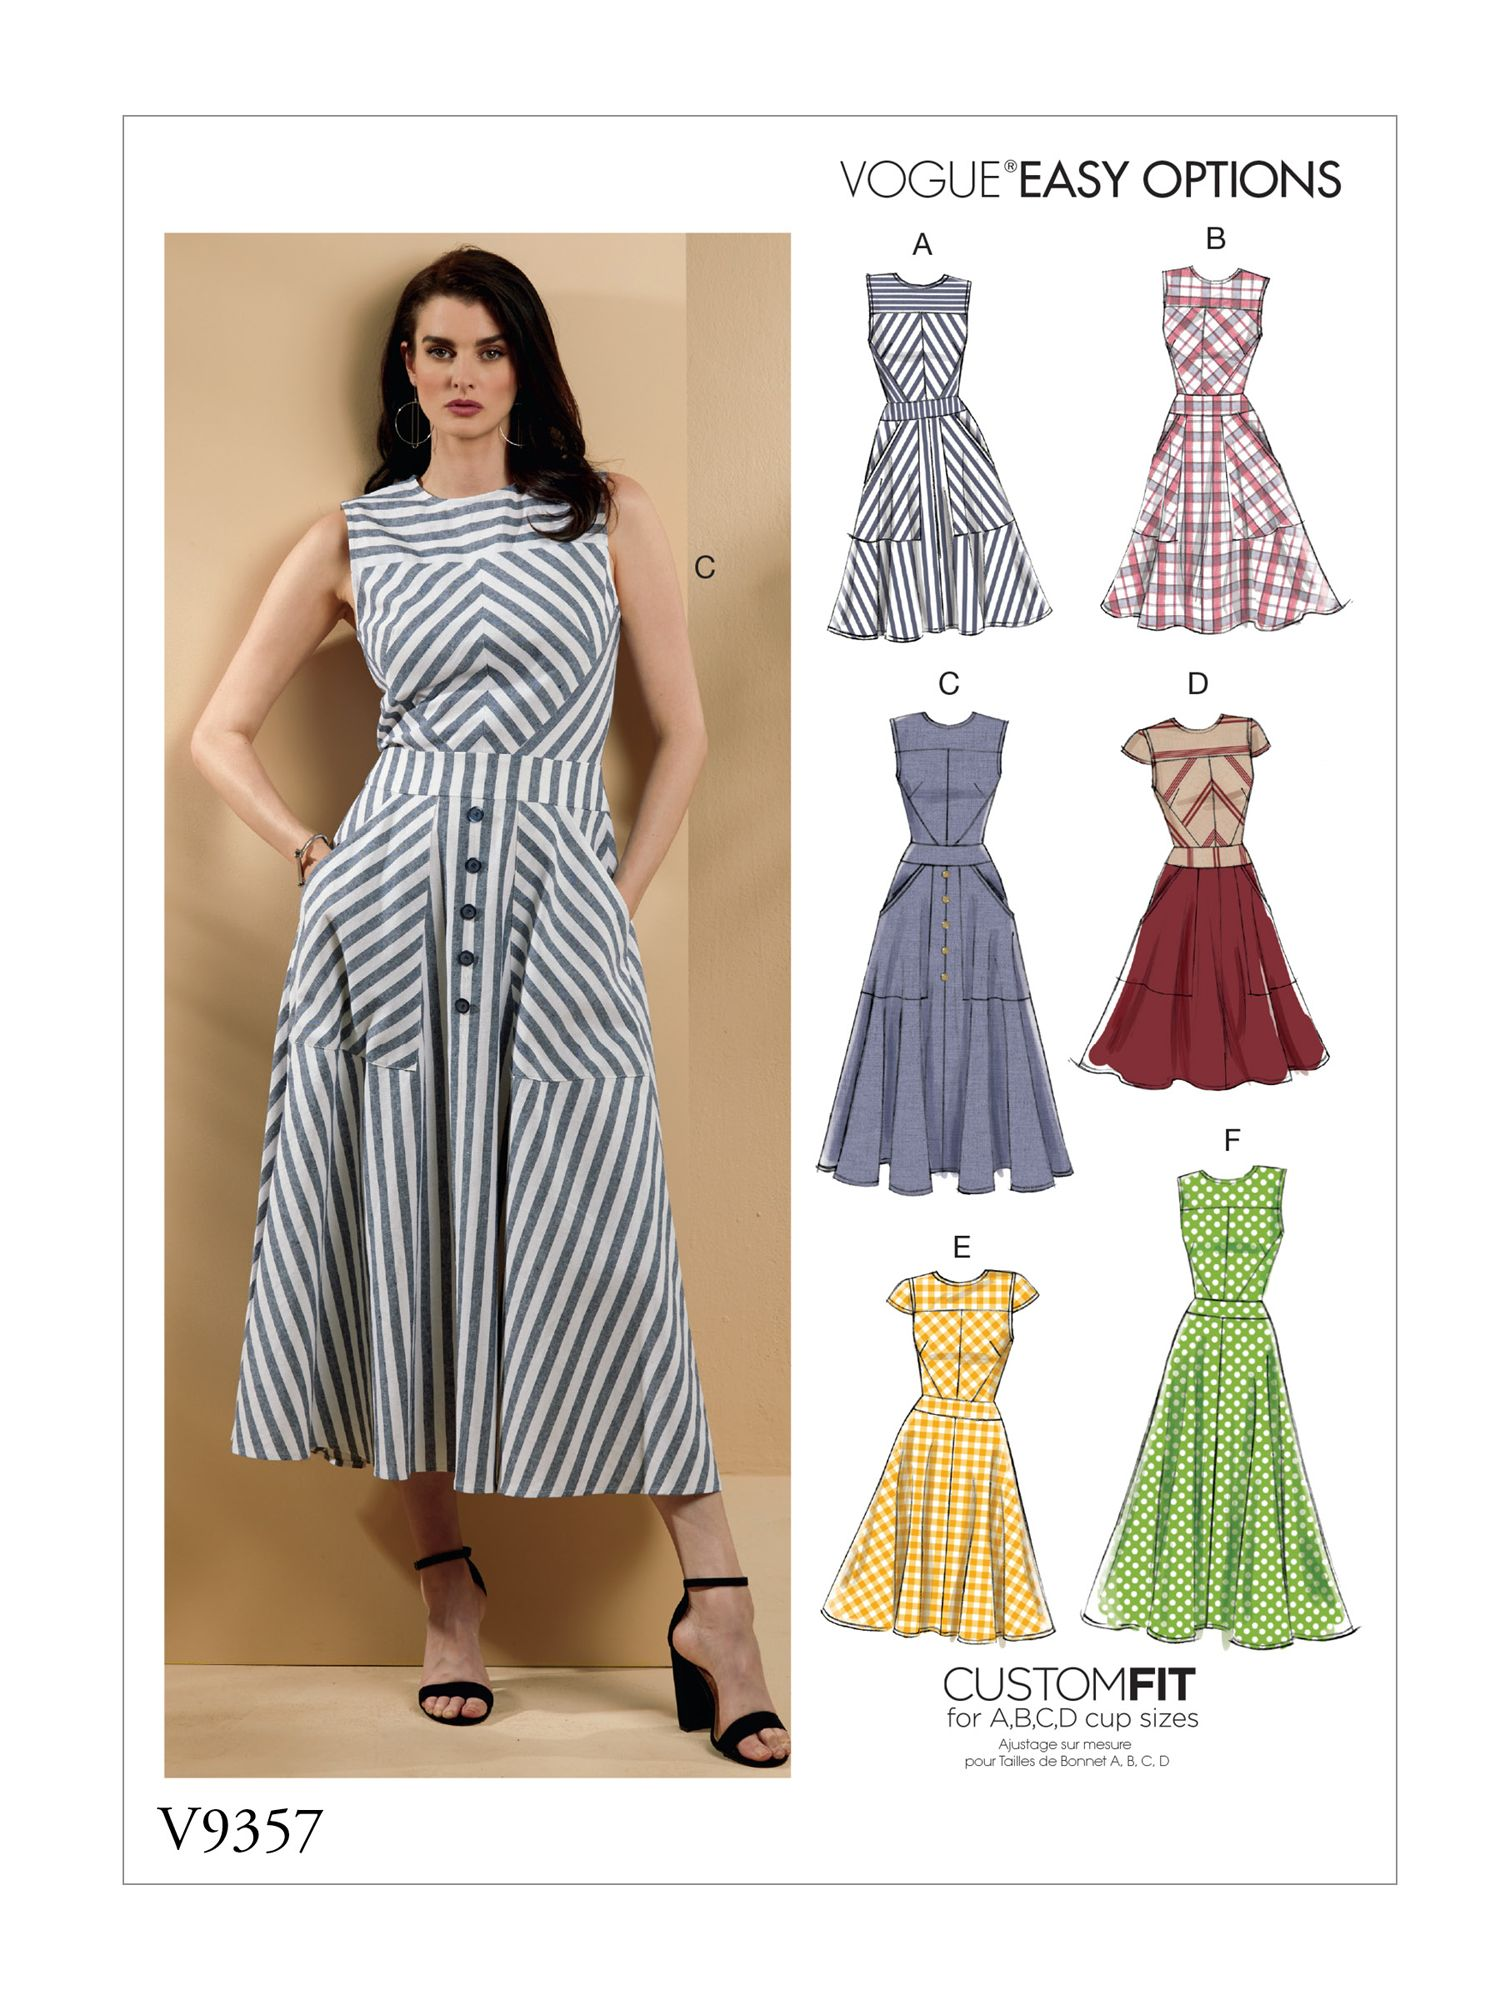 Vogue Easy Options Women S Dress Sewing Pattern 9357 At John Lewis Partners